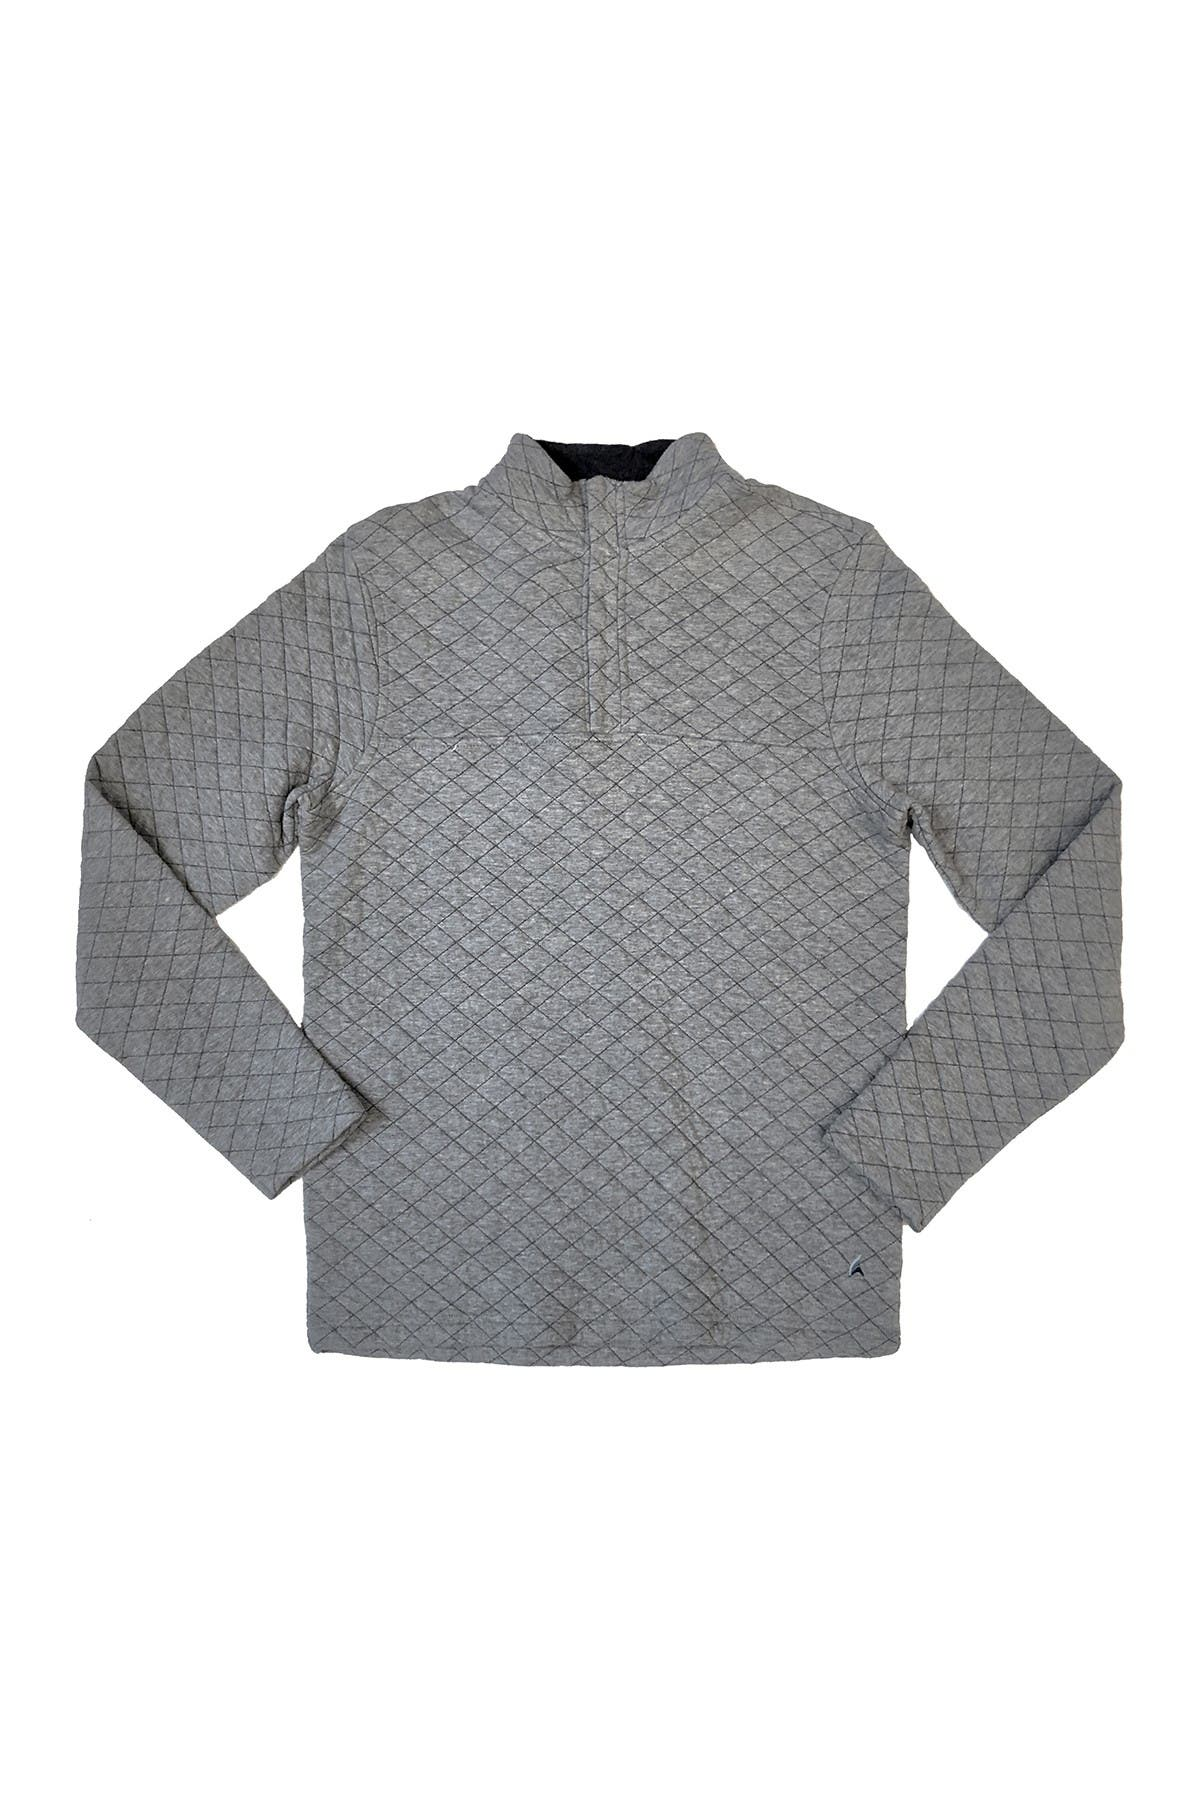 Image of Tailor Vintage Quarter Zip Quilted Knit Pullover